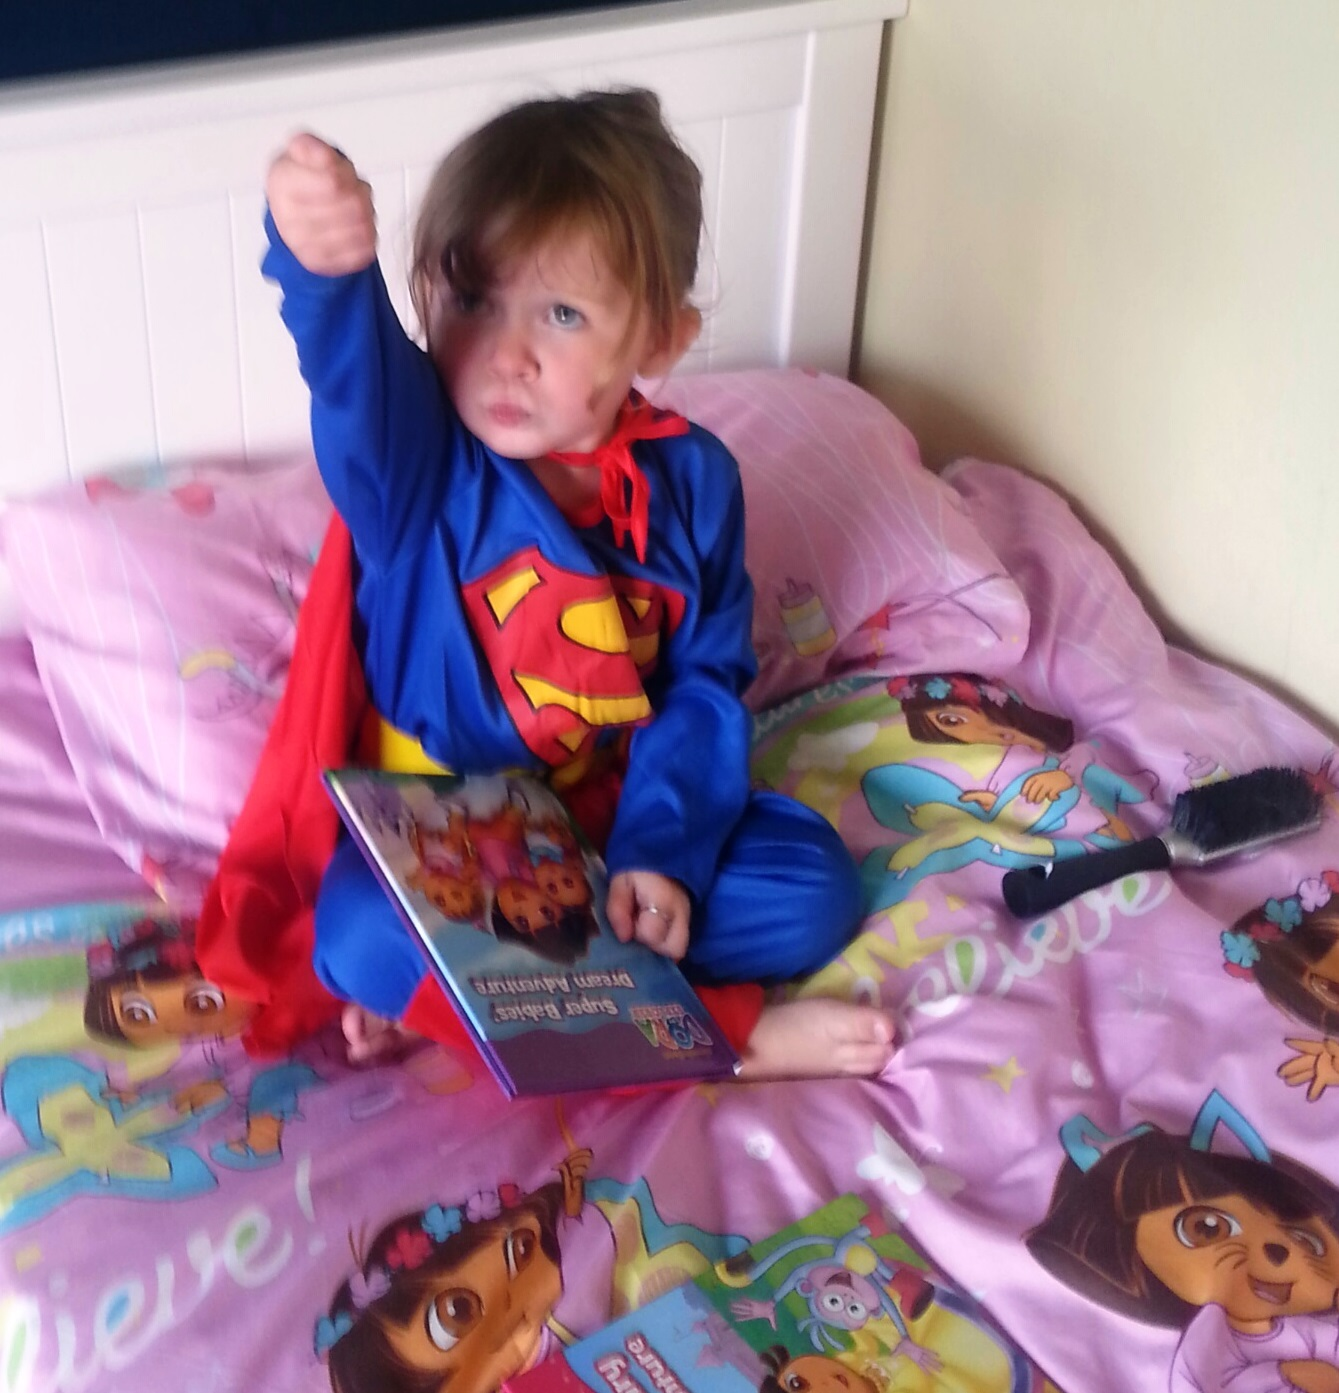 Superheroes and weapon play - for fun and learning